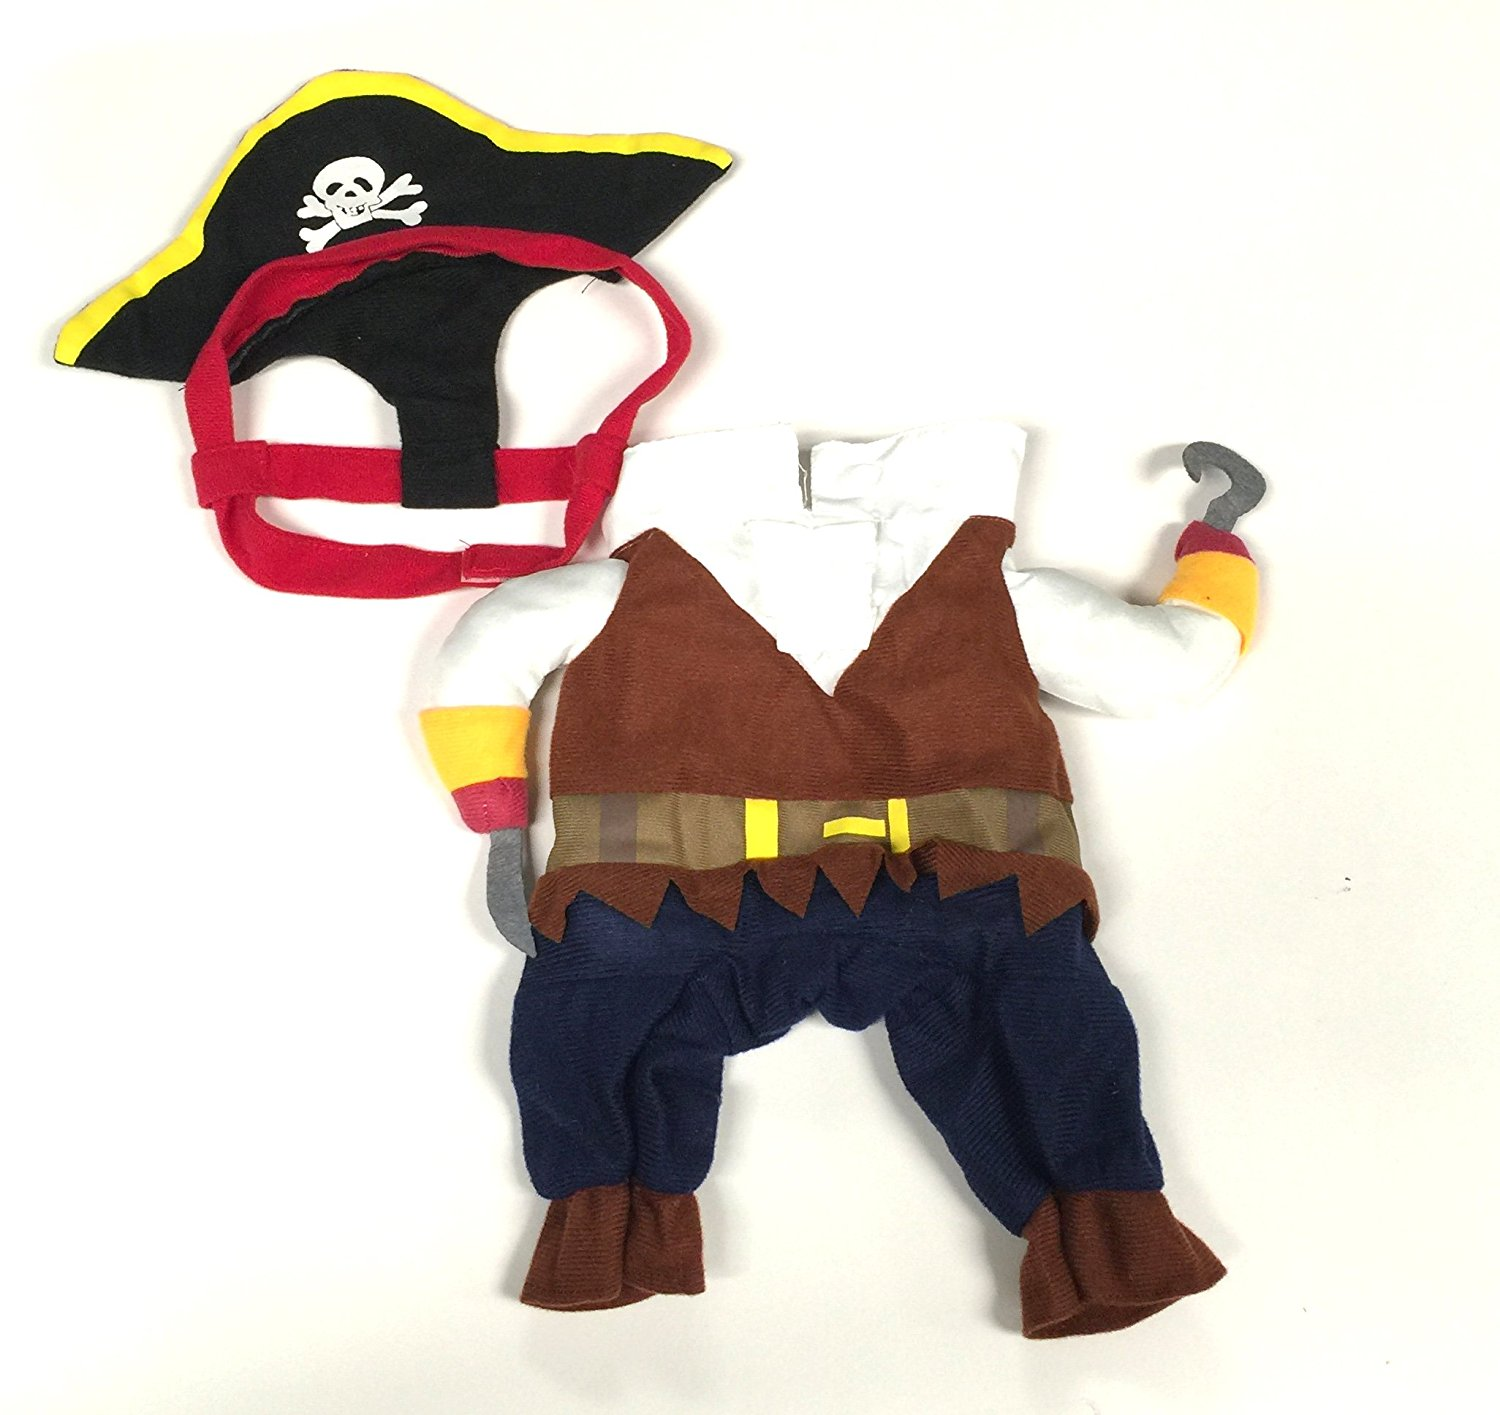 Midlee Pirate Fake Arms Costume for Small Dogs (X-Small)